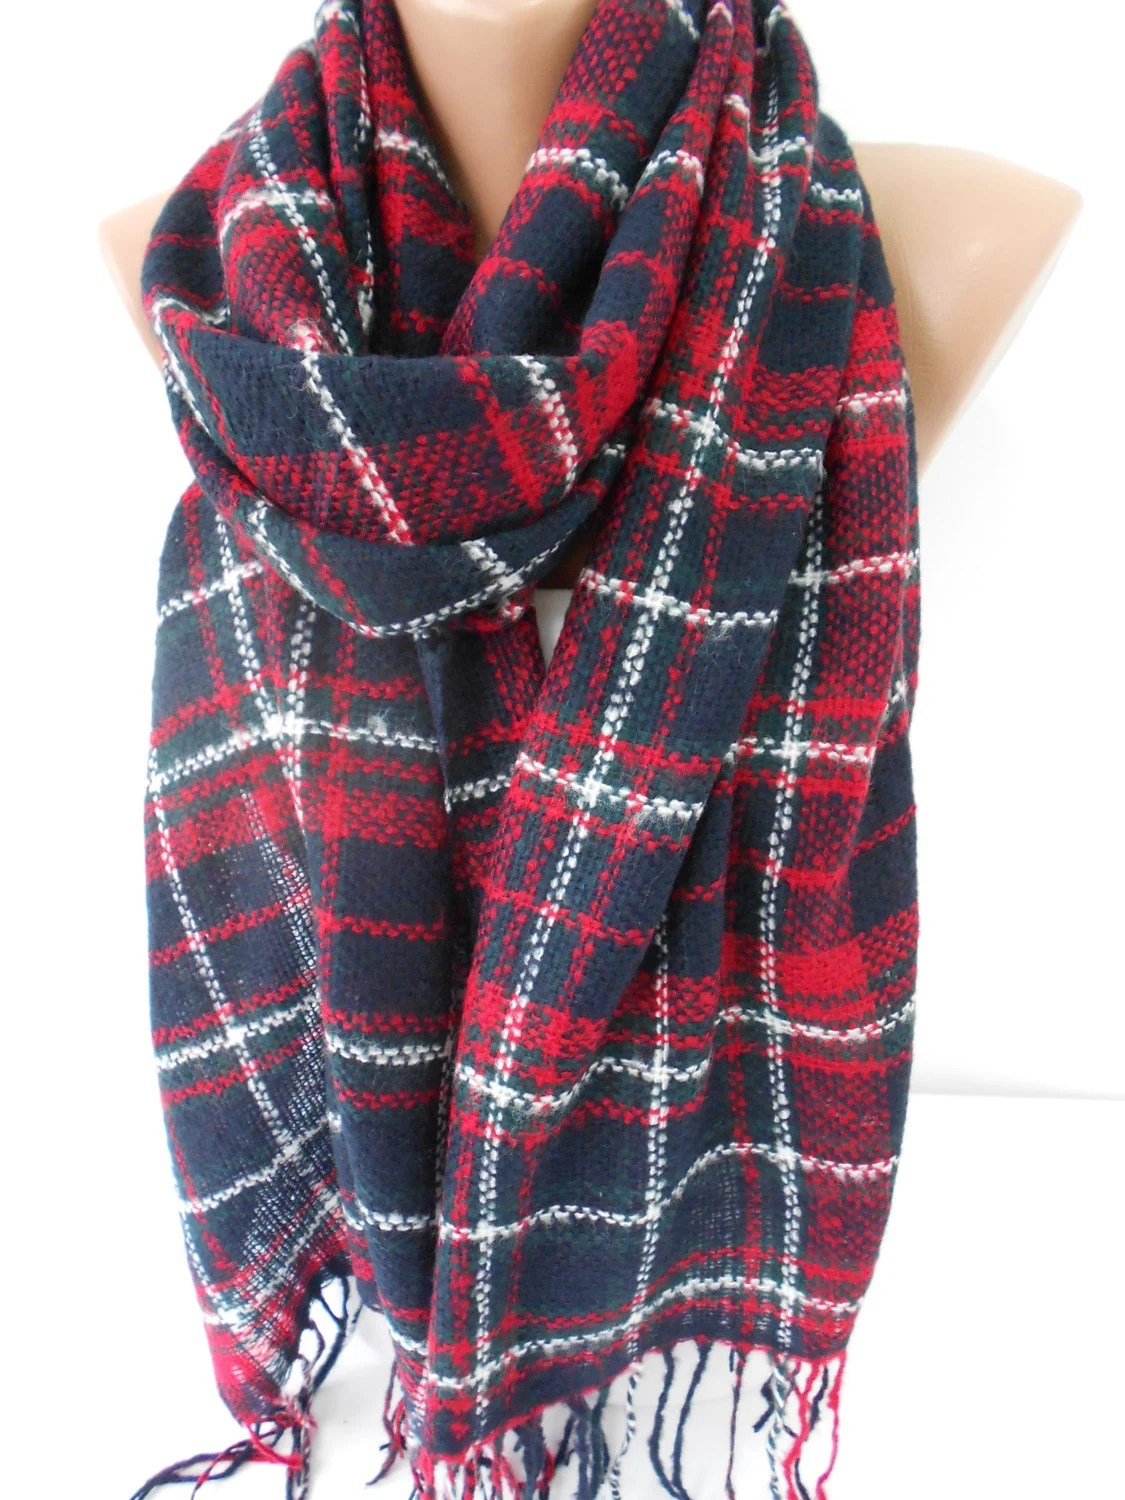 Find Juniors Red Scarf, Women's Red Scarf and Men's Red Scarf at Macy's! Macy's Presents: The Edit - A curated mix of fashion and inspiration Check It Out .